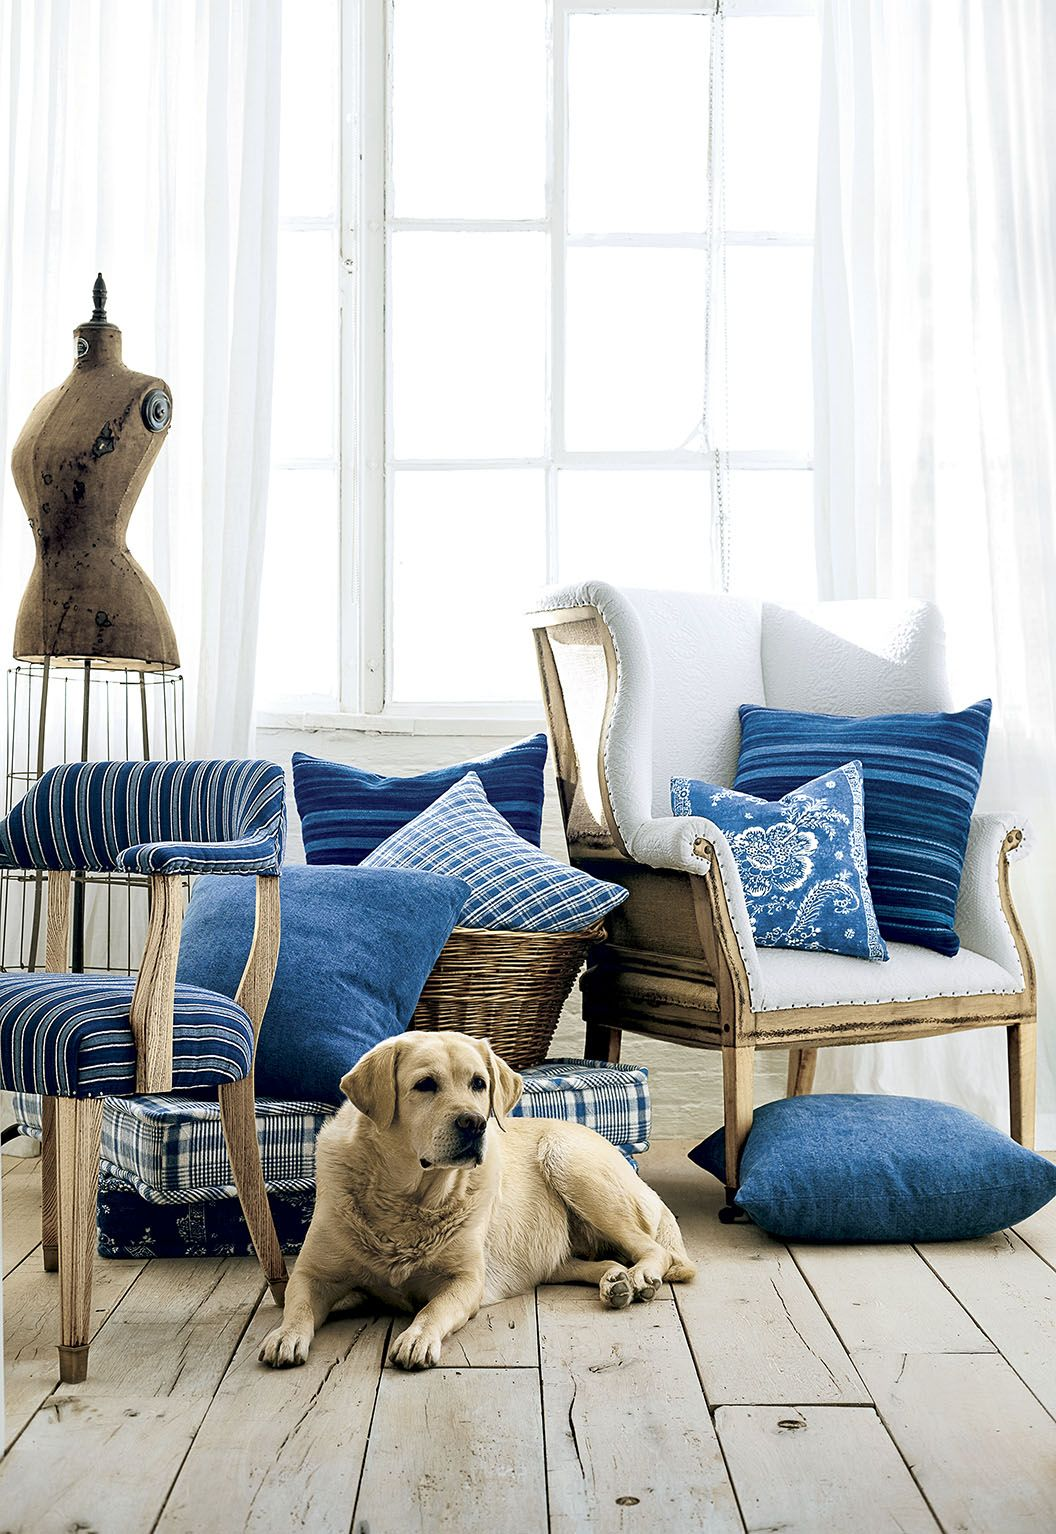 Ralph Lauren Home Elizabeth Street fabrics: Ticking stripes, patchworks and prints in a palette of washed blues and antique whites.